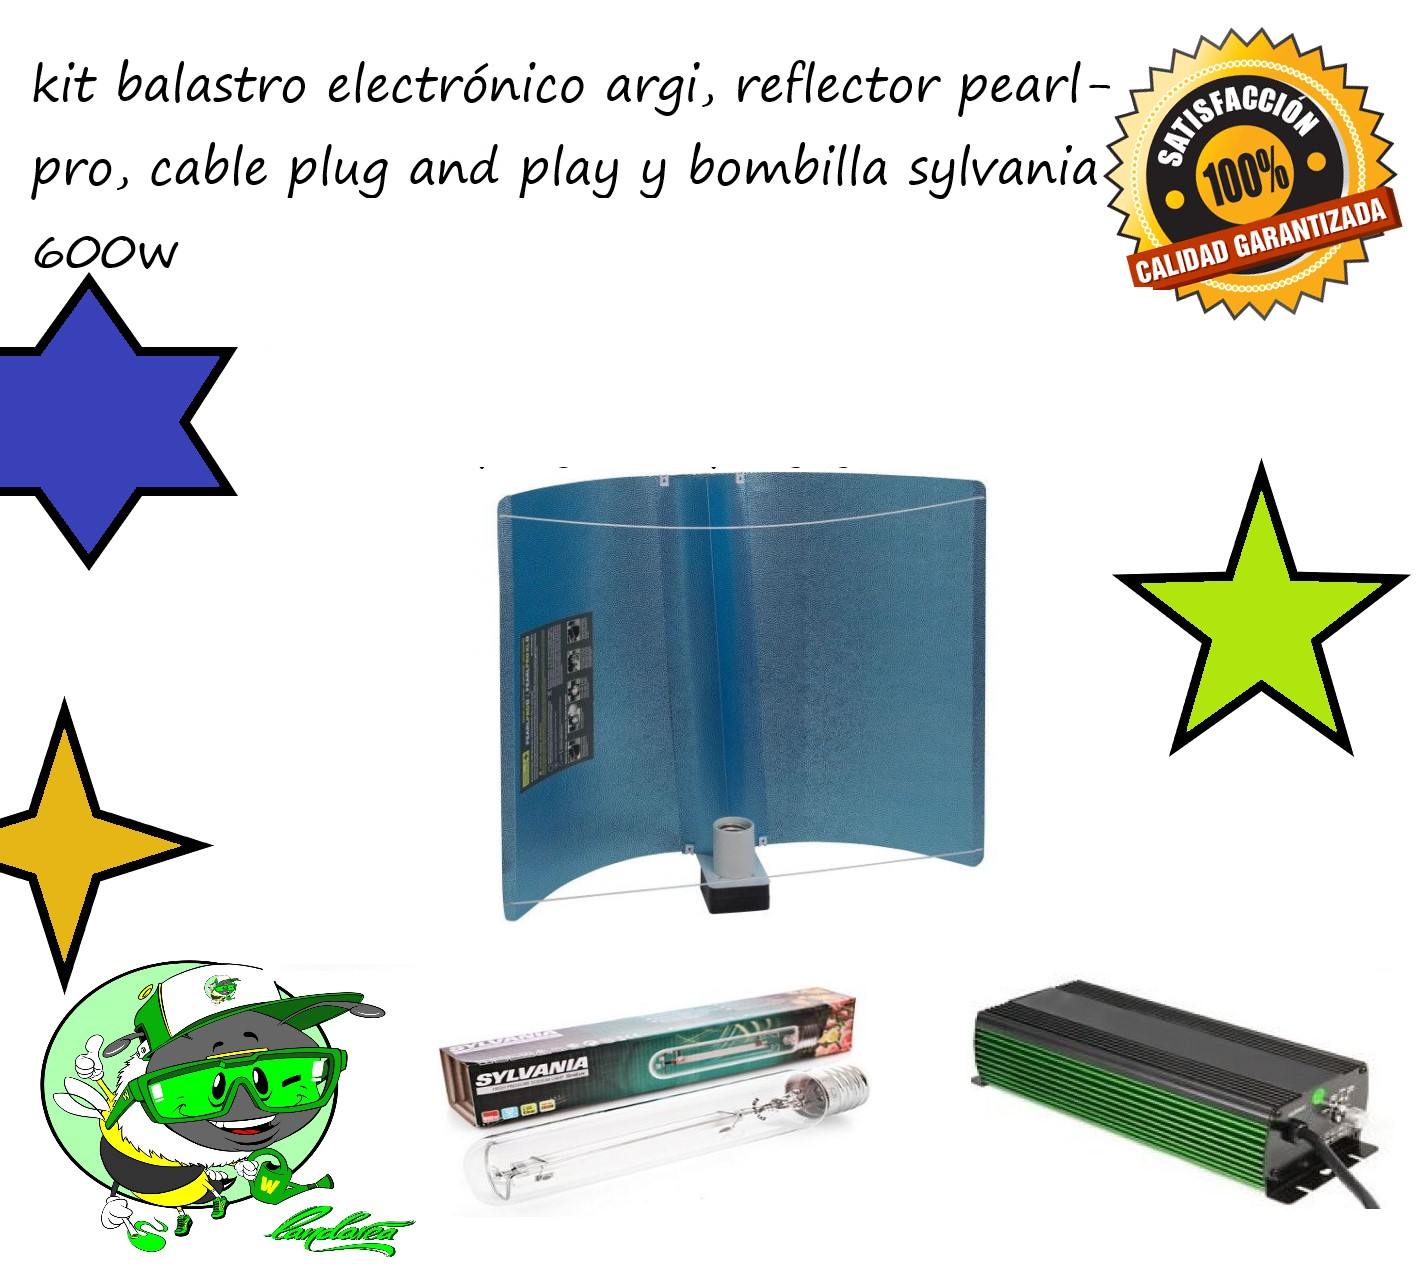 KIT BALASTRO ELECTRONICO ARGI, REFLECTOR PEARL PRO, BOMBILLA SYLVANIA GROLUX, CABLE PLUG AND PLAY 1,5 M